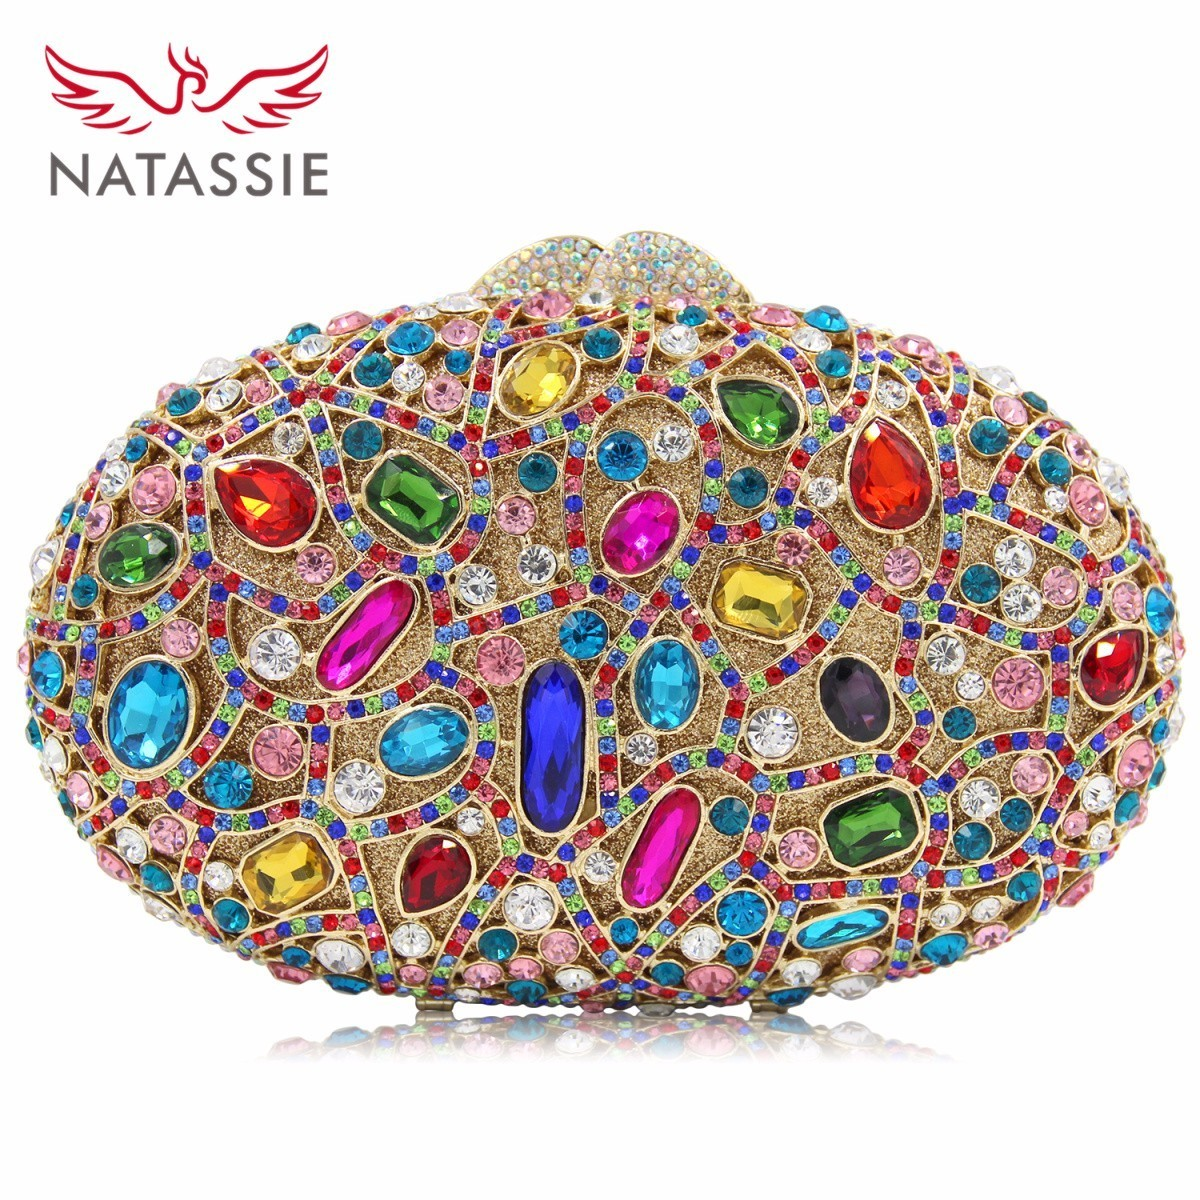 NATASSIE New Fashion Ladies Crystal Wedding Purses Women Evening Clutches Party Bags Female Top Quality Colorful Day Clutch natassie women evening bags ladies crystal wedding clutch bag female party clutches purses